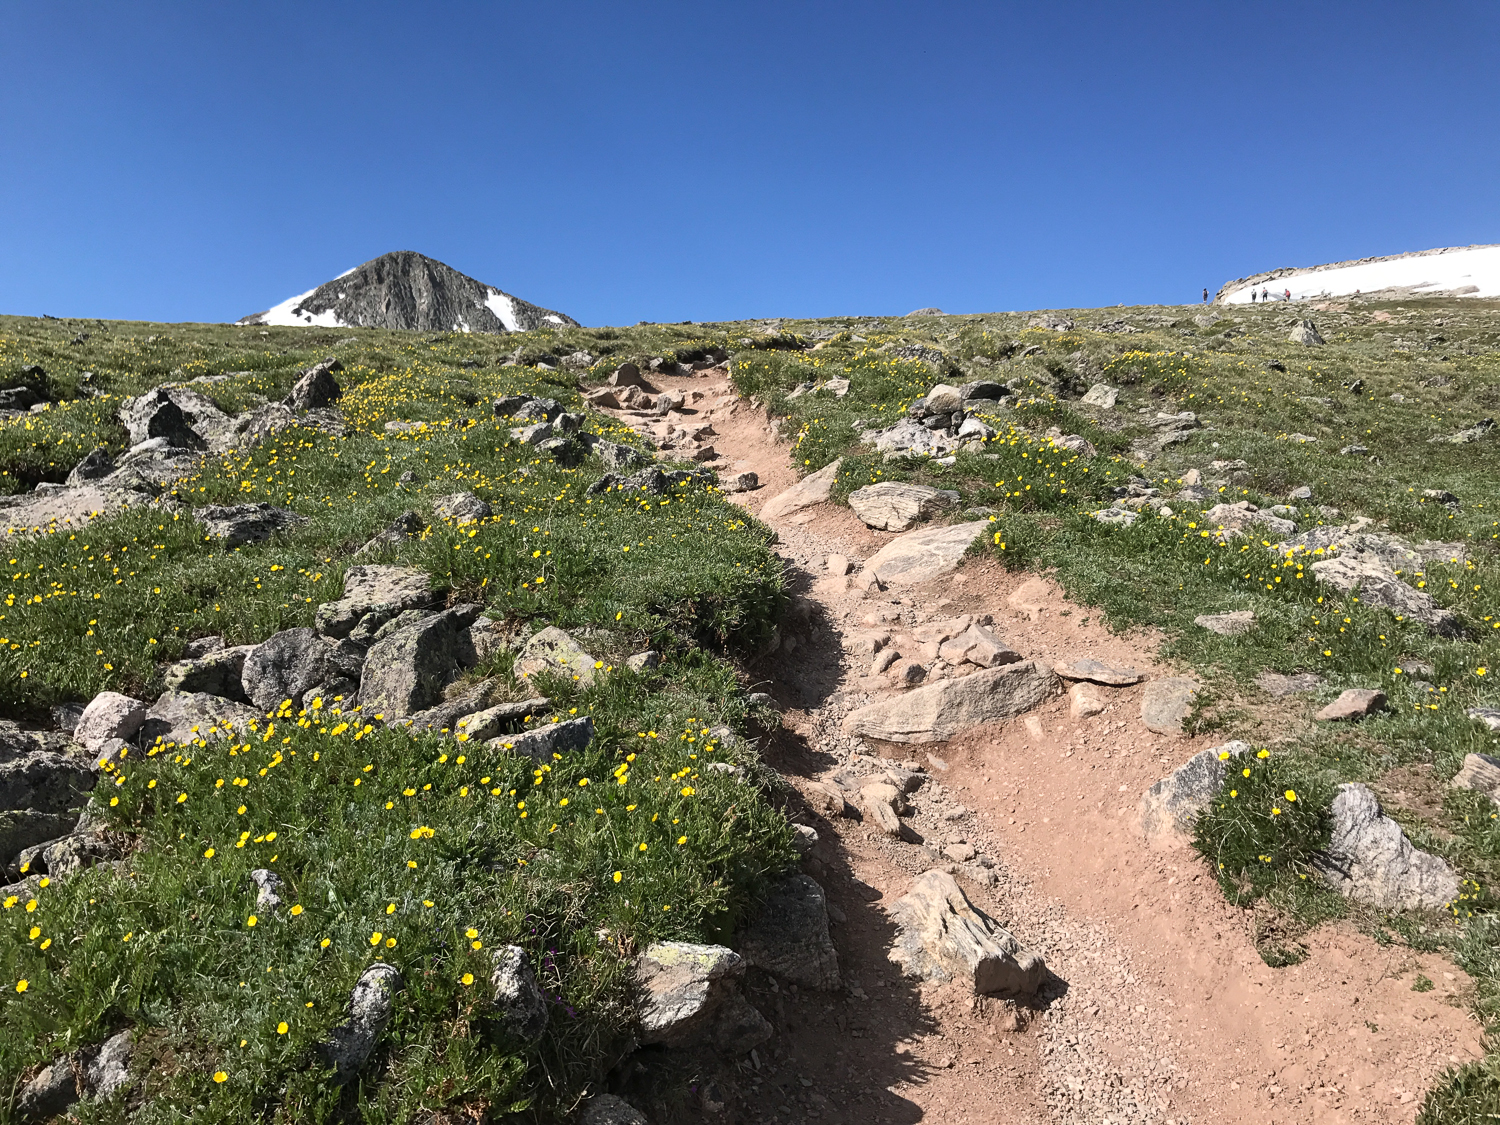 The summit peaking over the flanks of Flattop